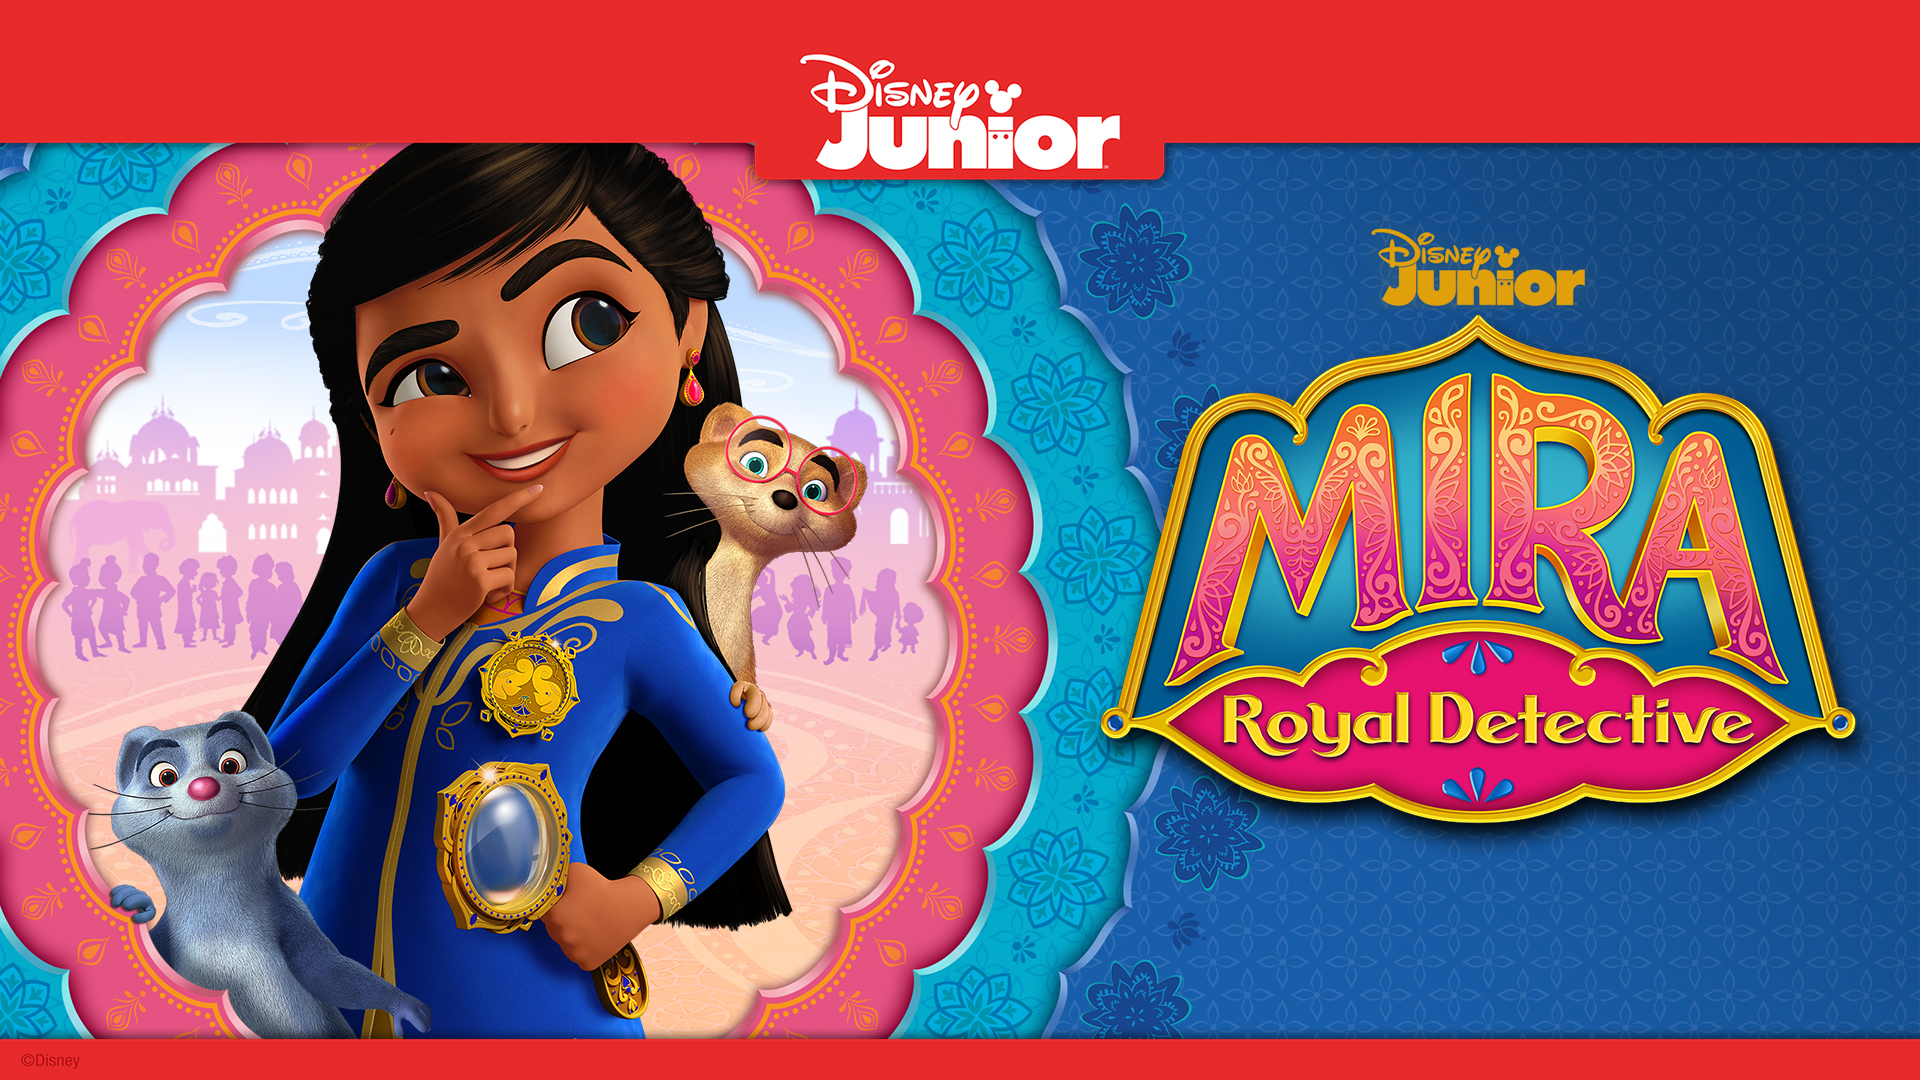 Special Mira Royal Detective Episodes To Celebrate Asian Pacific American Heritage Month Plus Coloring Pages Bollyspice Com The Latest Movies Interviews In Bollywood